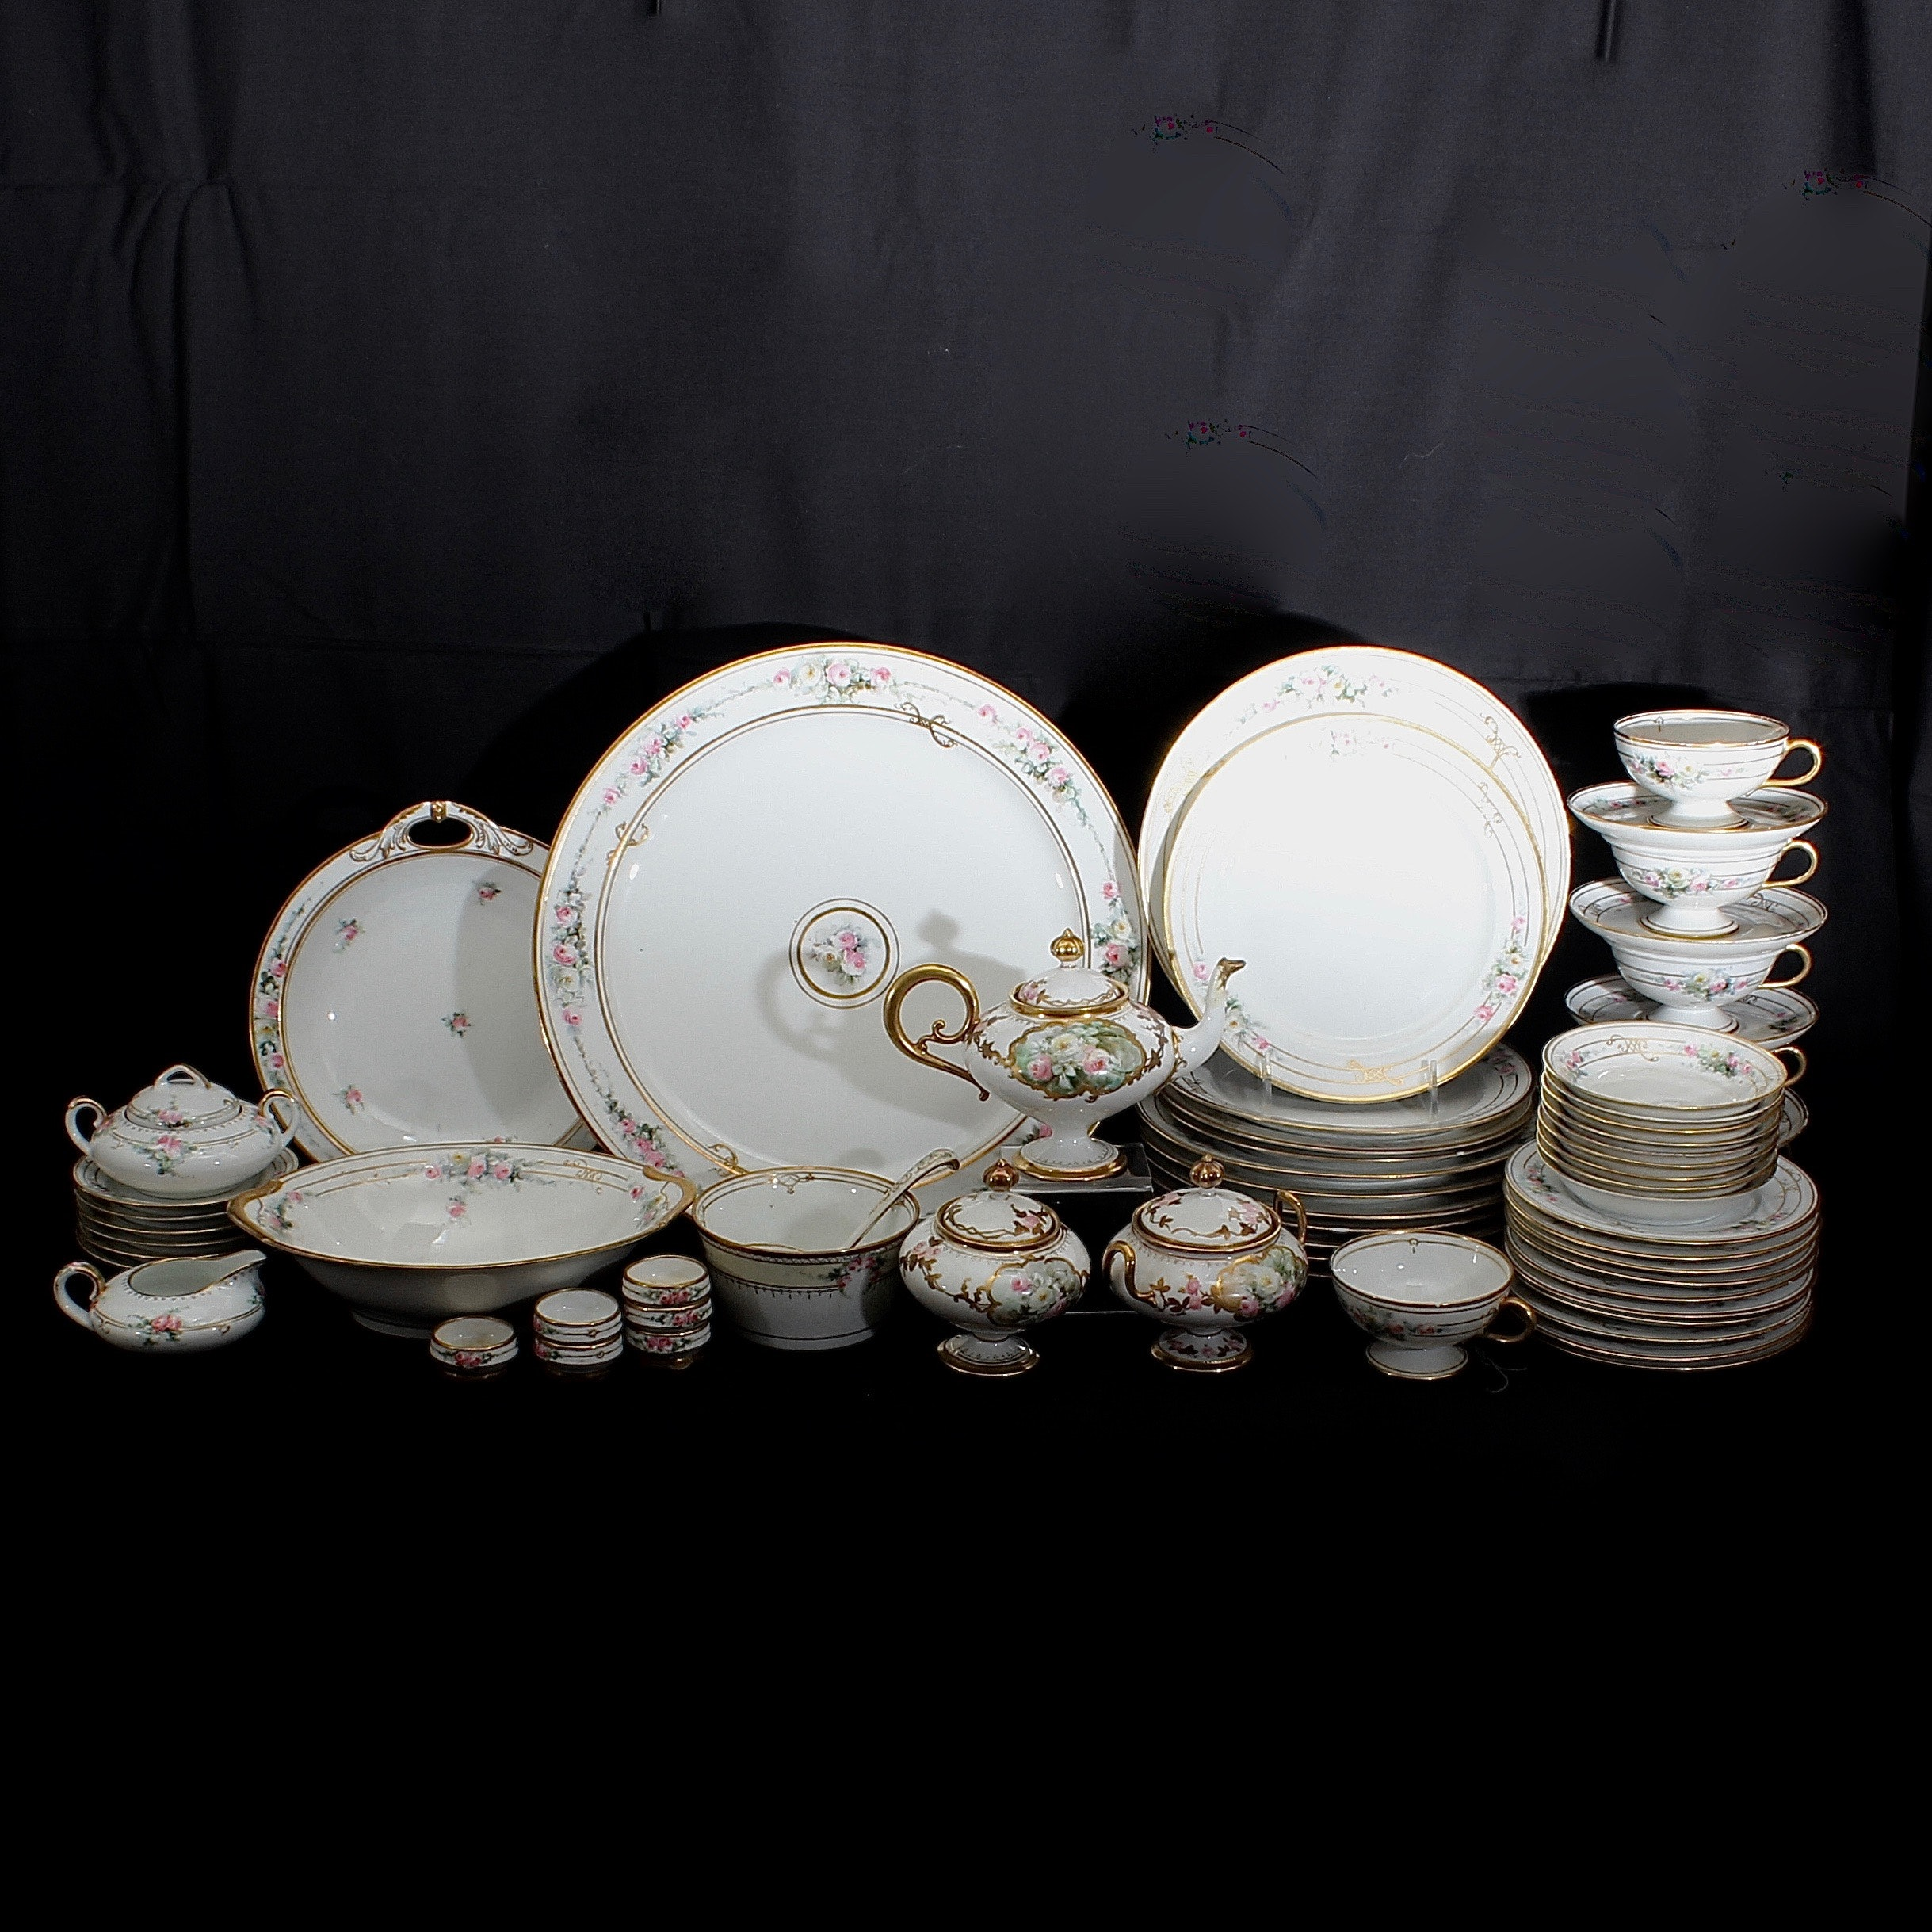 Porcelain Tea Set and Tableware Collection including French Limoges